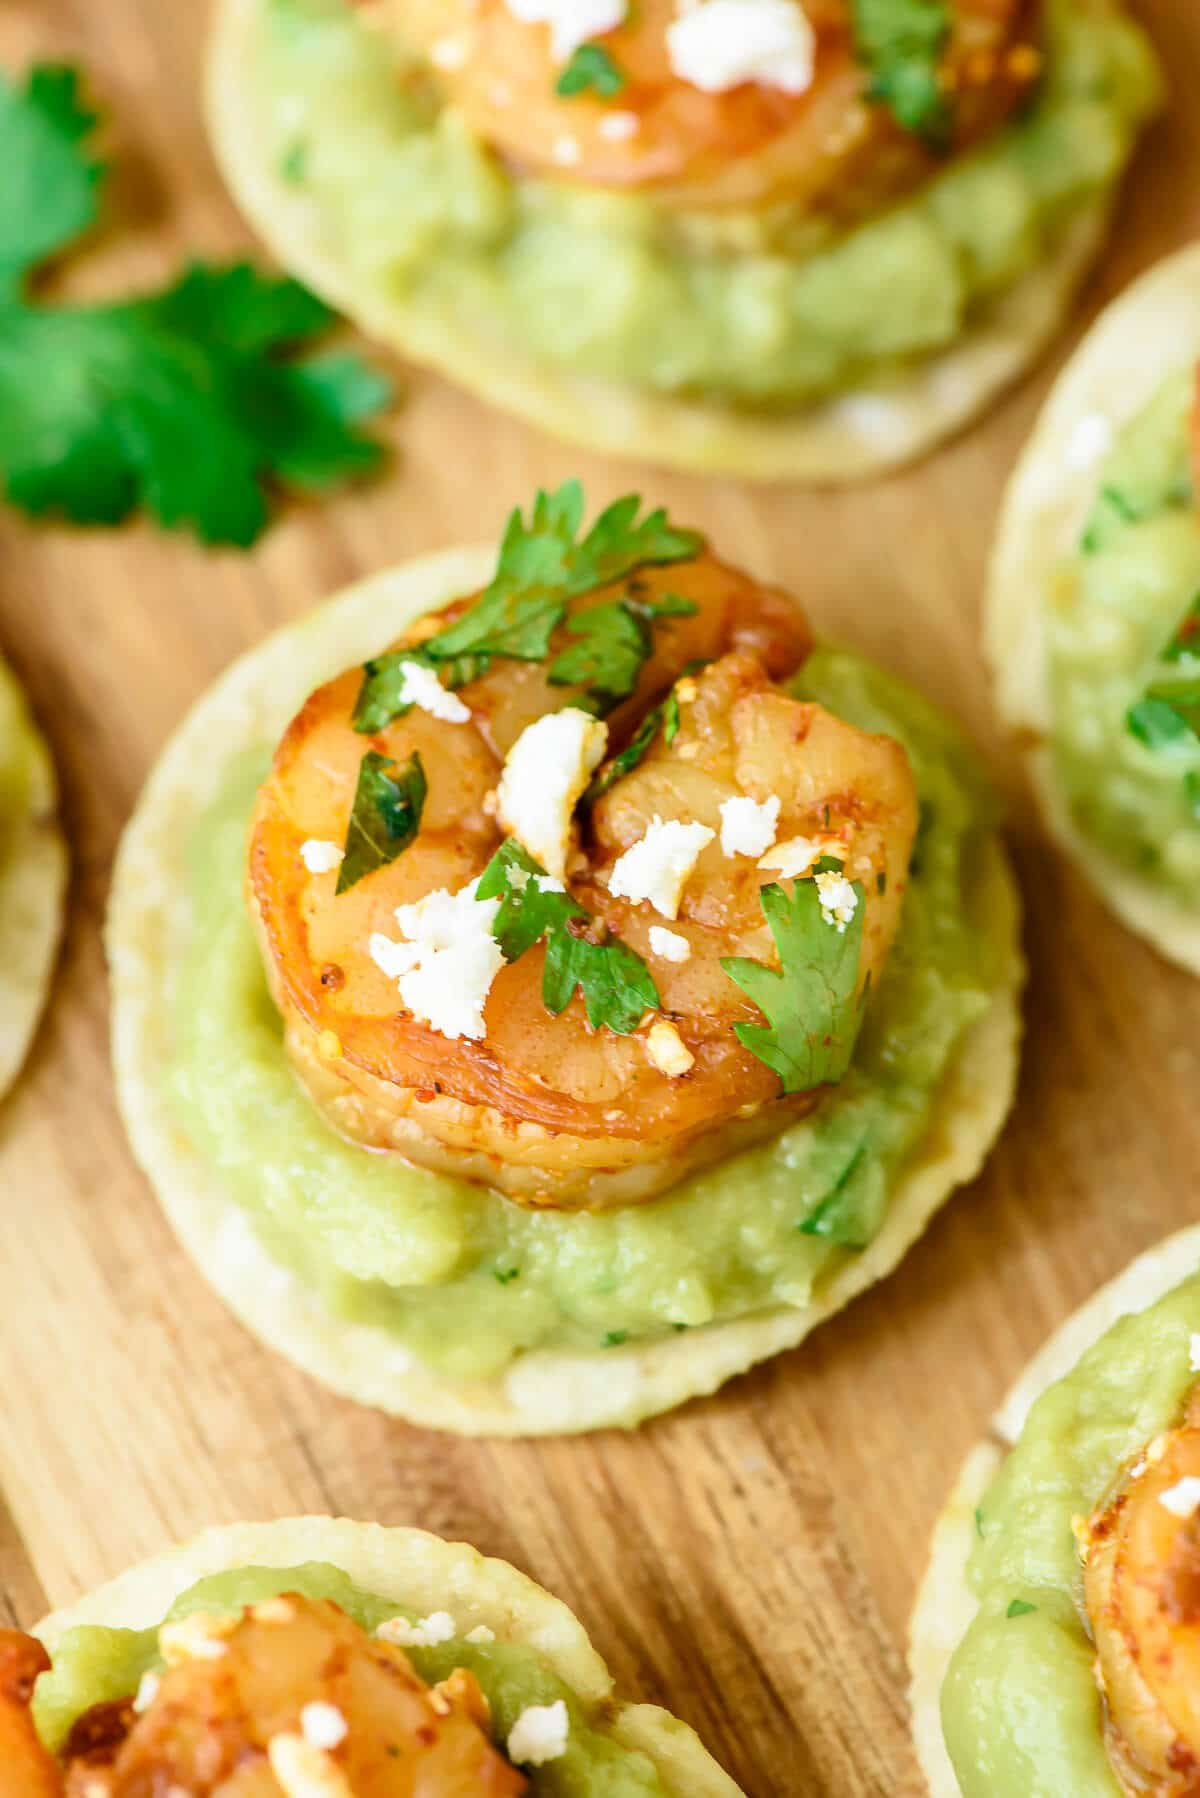 Spicy Shrimp Guacamole Bites - Juicy shrimp and spicy guacamole on top of a crunchy tortilla chip. So EASY and everyone loves this football food!